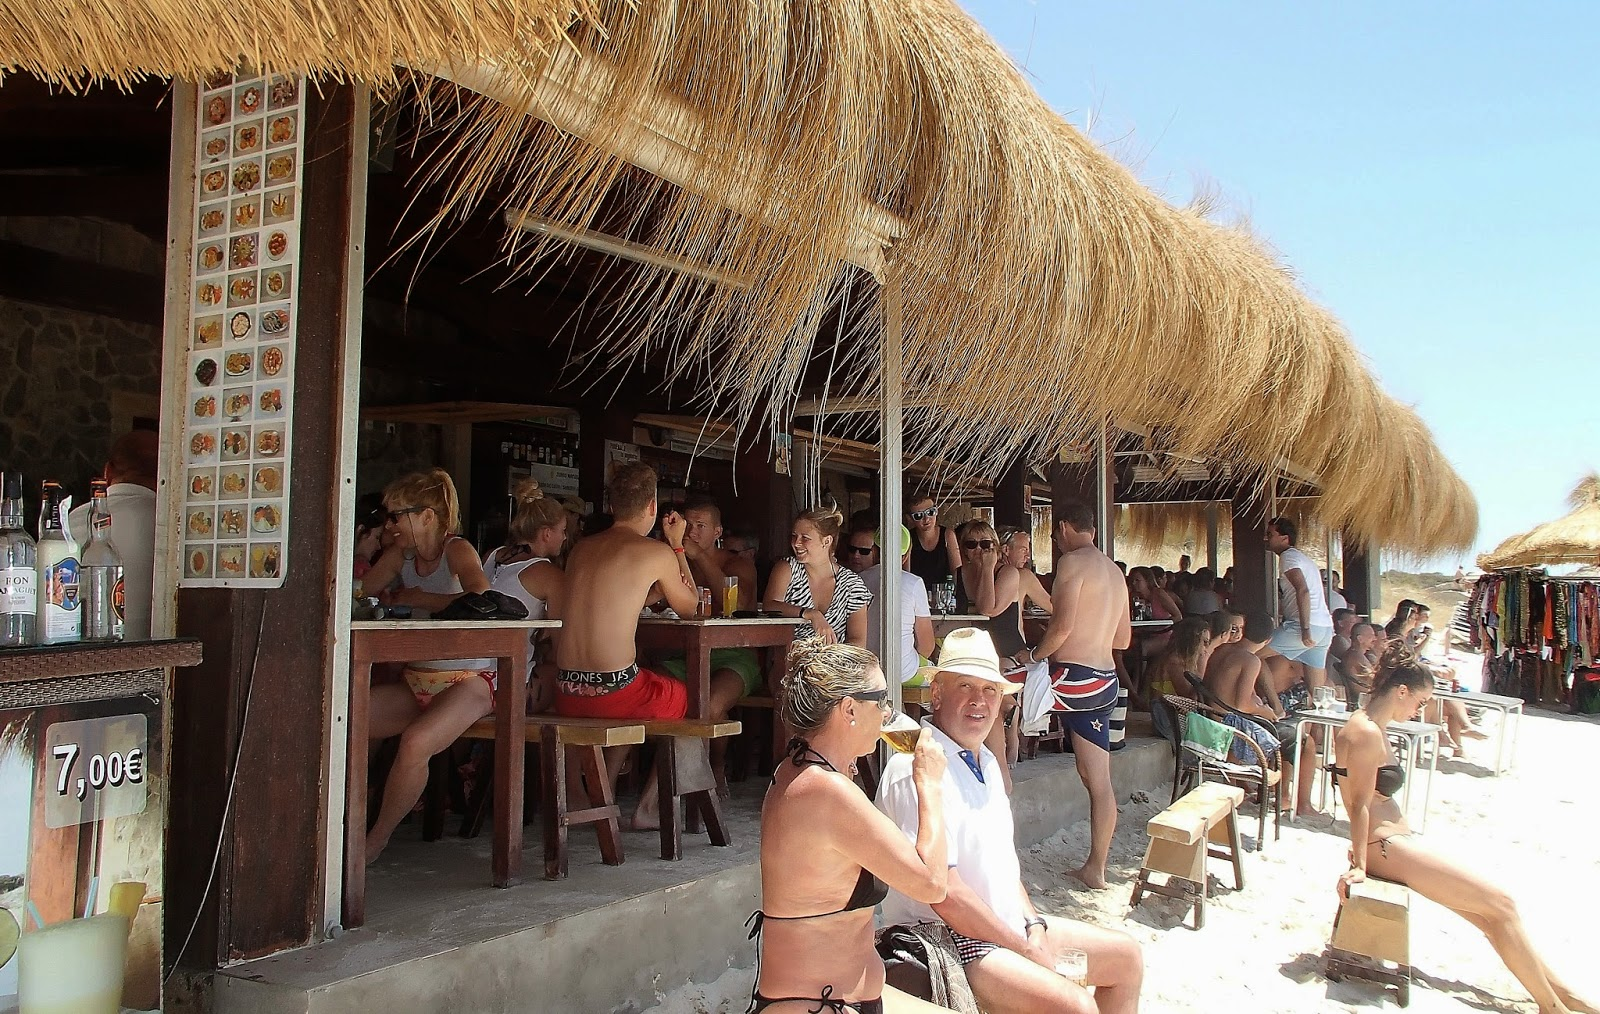 Spanish nudist beach resort